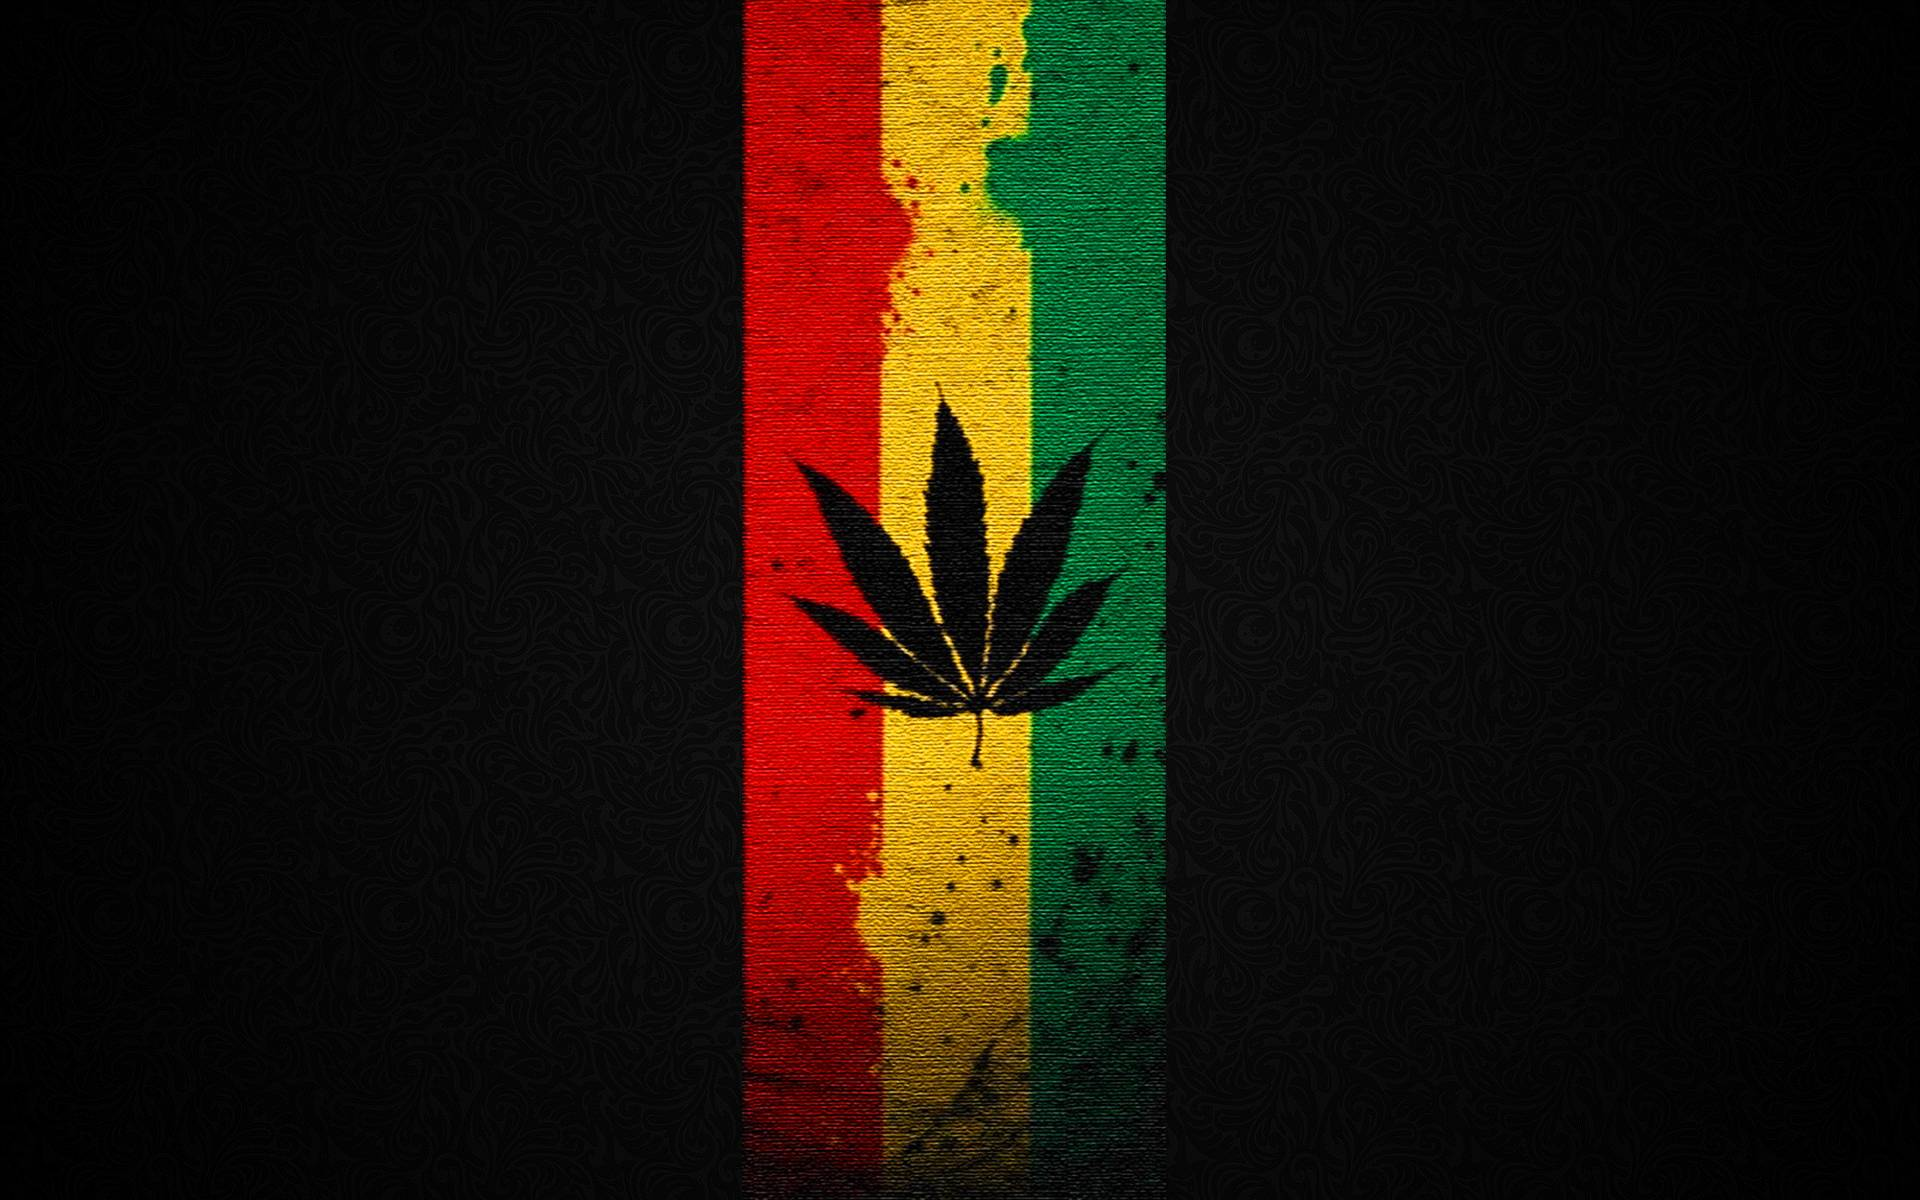 Awesome Rasta Wallpaper Iphone  All For You Wallpaper Site 1920x1200